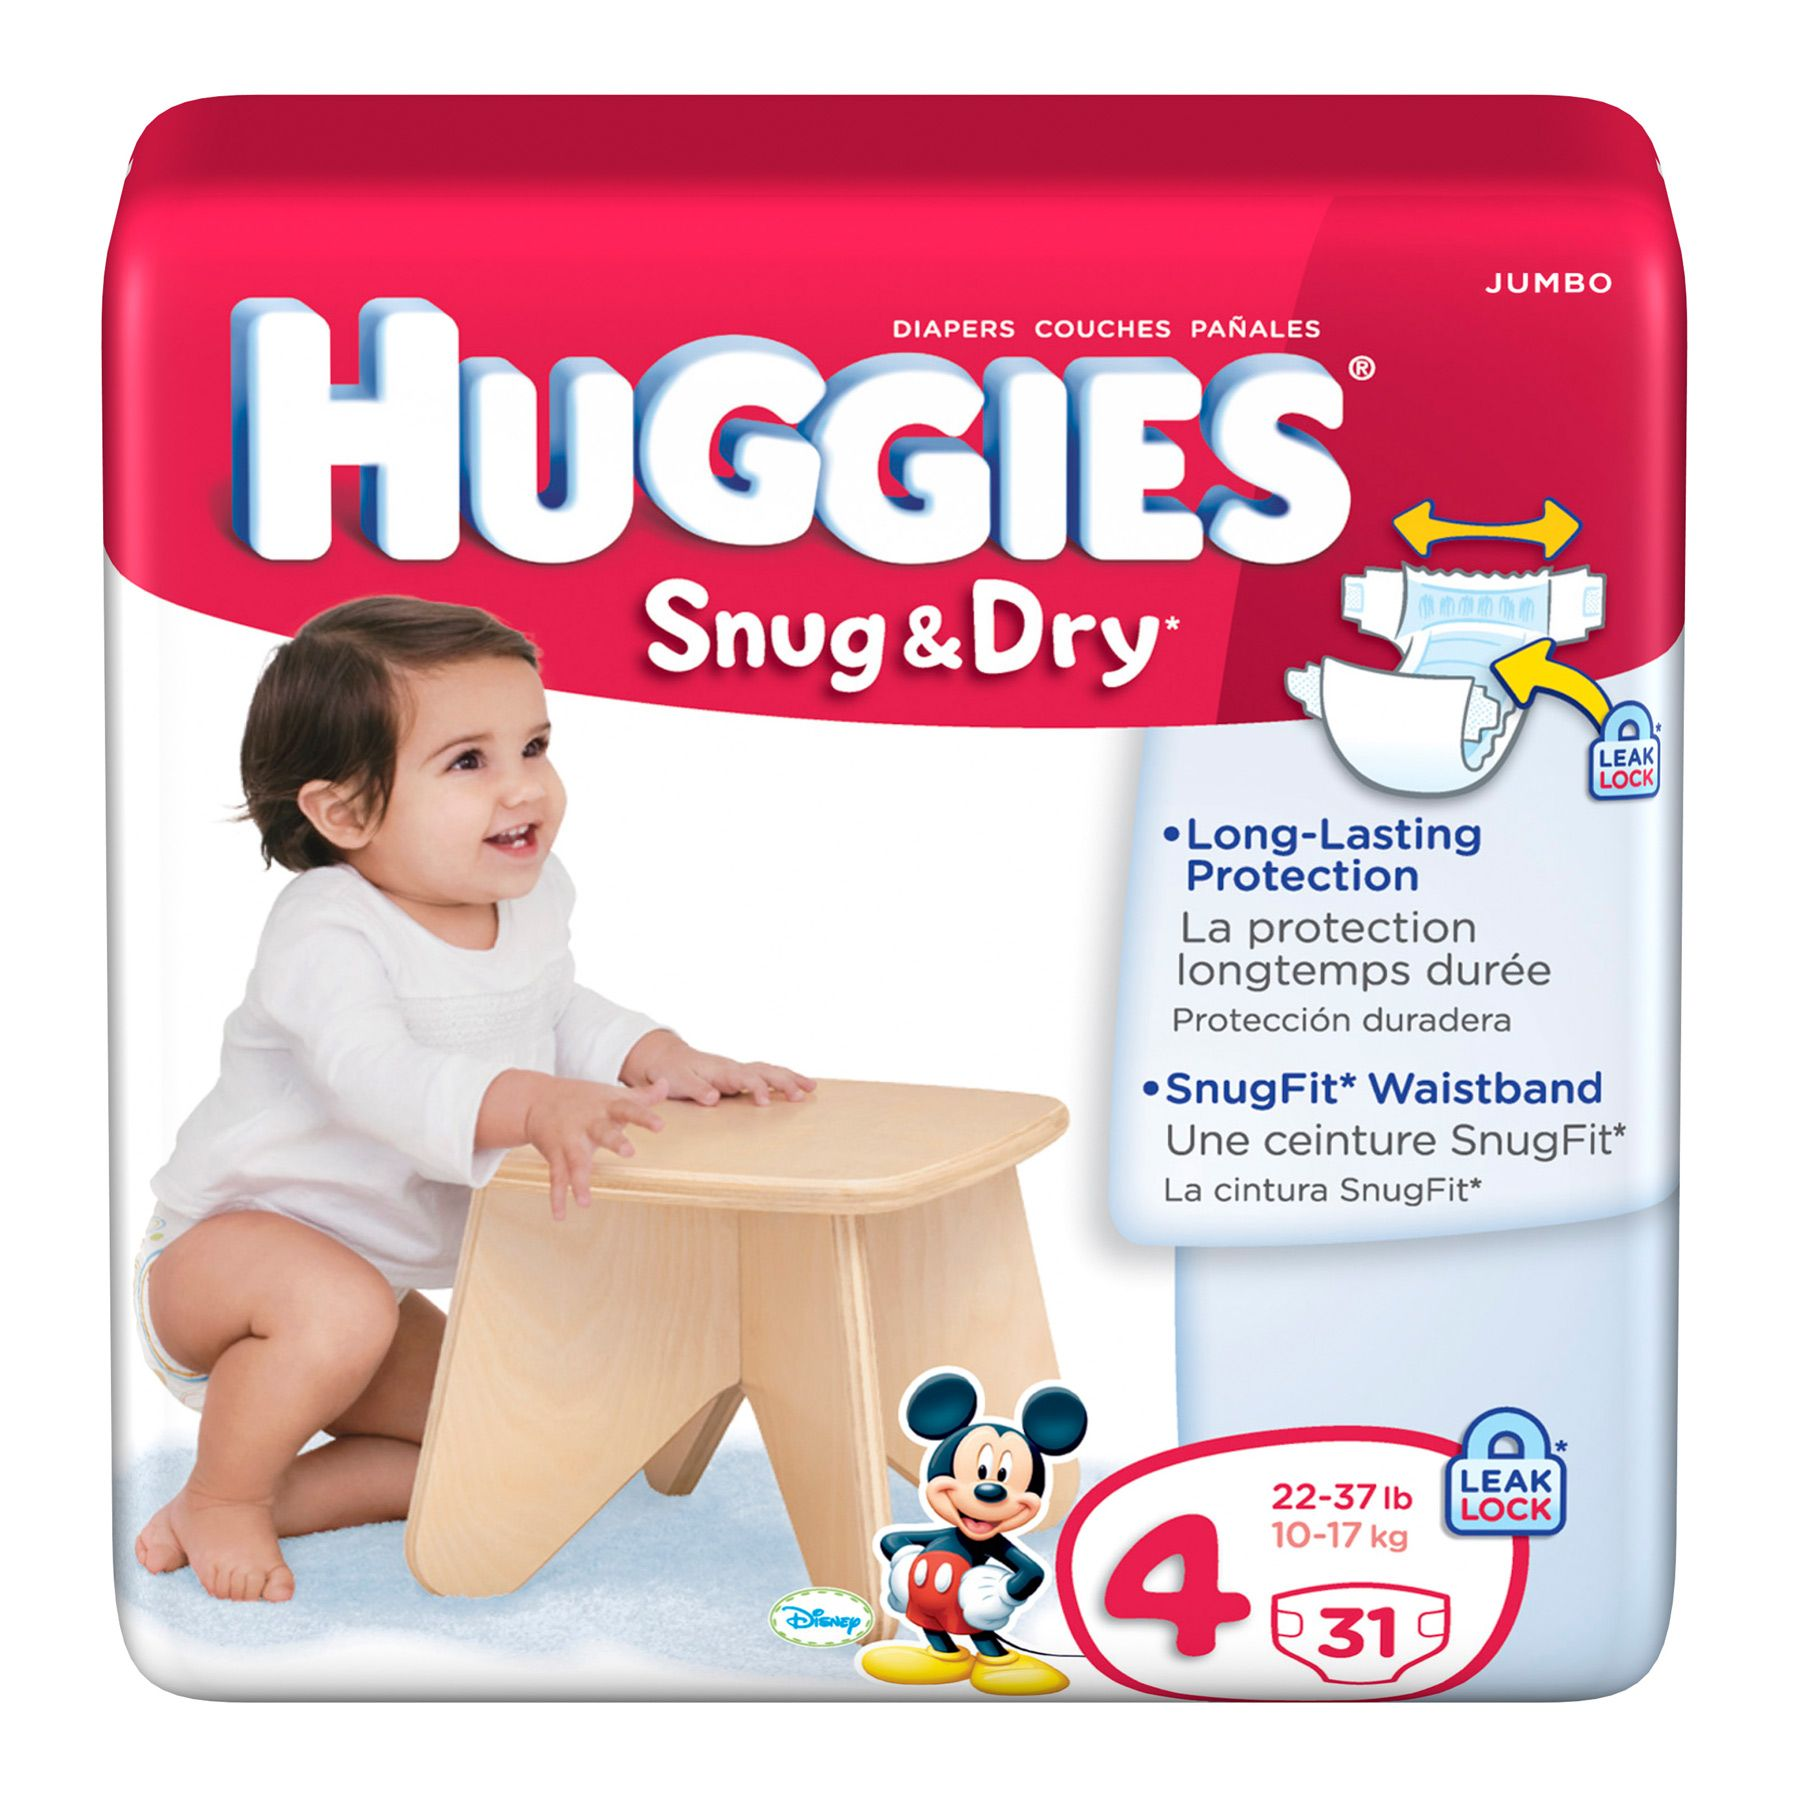 HOT  in New Huggies Diapers Printable Coupons Released  My